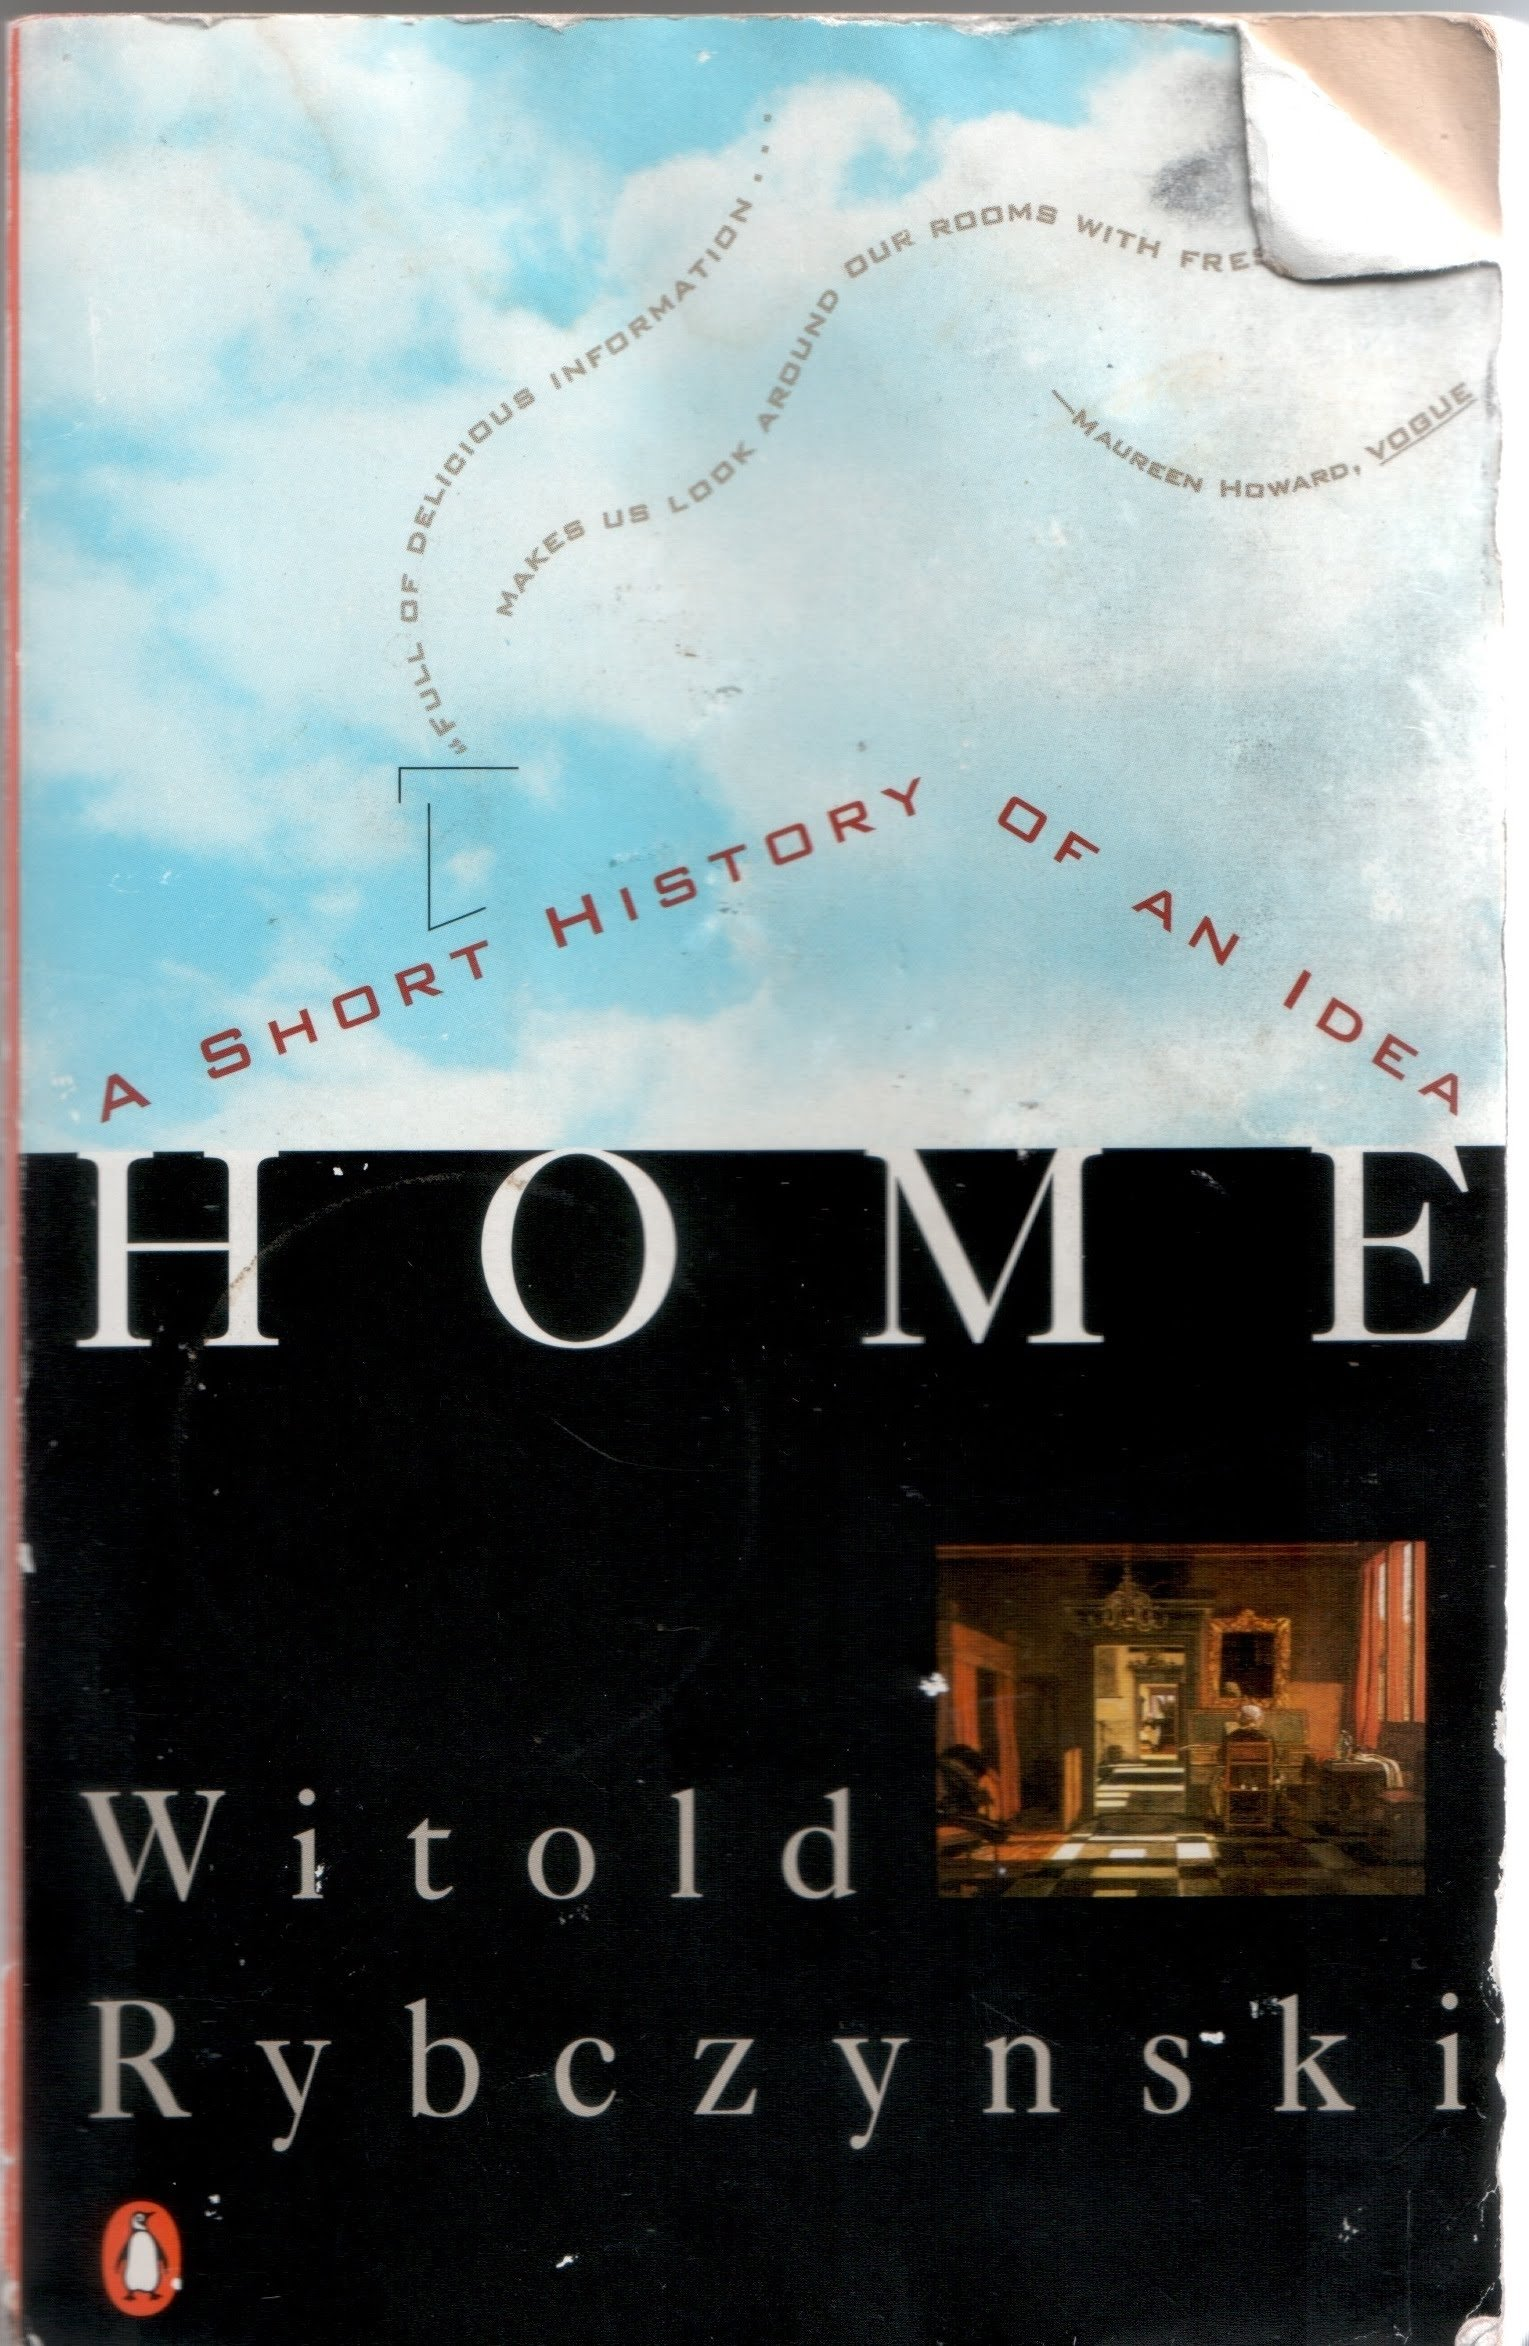 bookish ramblings: home: a short history of an idea - youtube